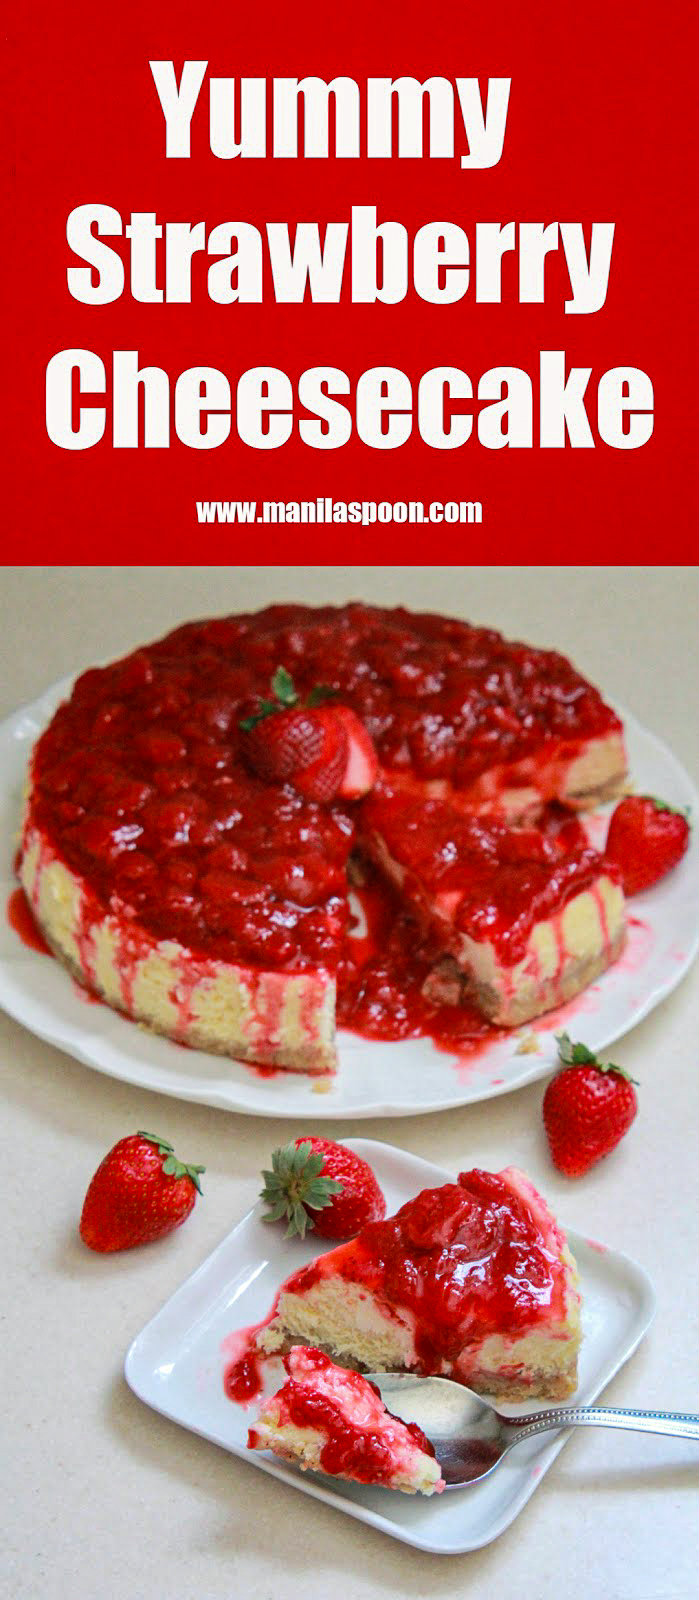 Yummy Strawberry Cheesecake